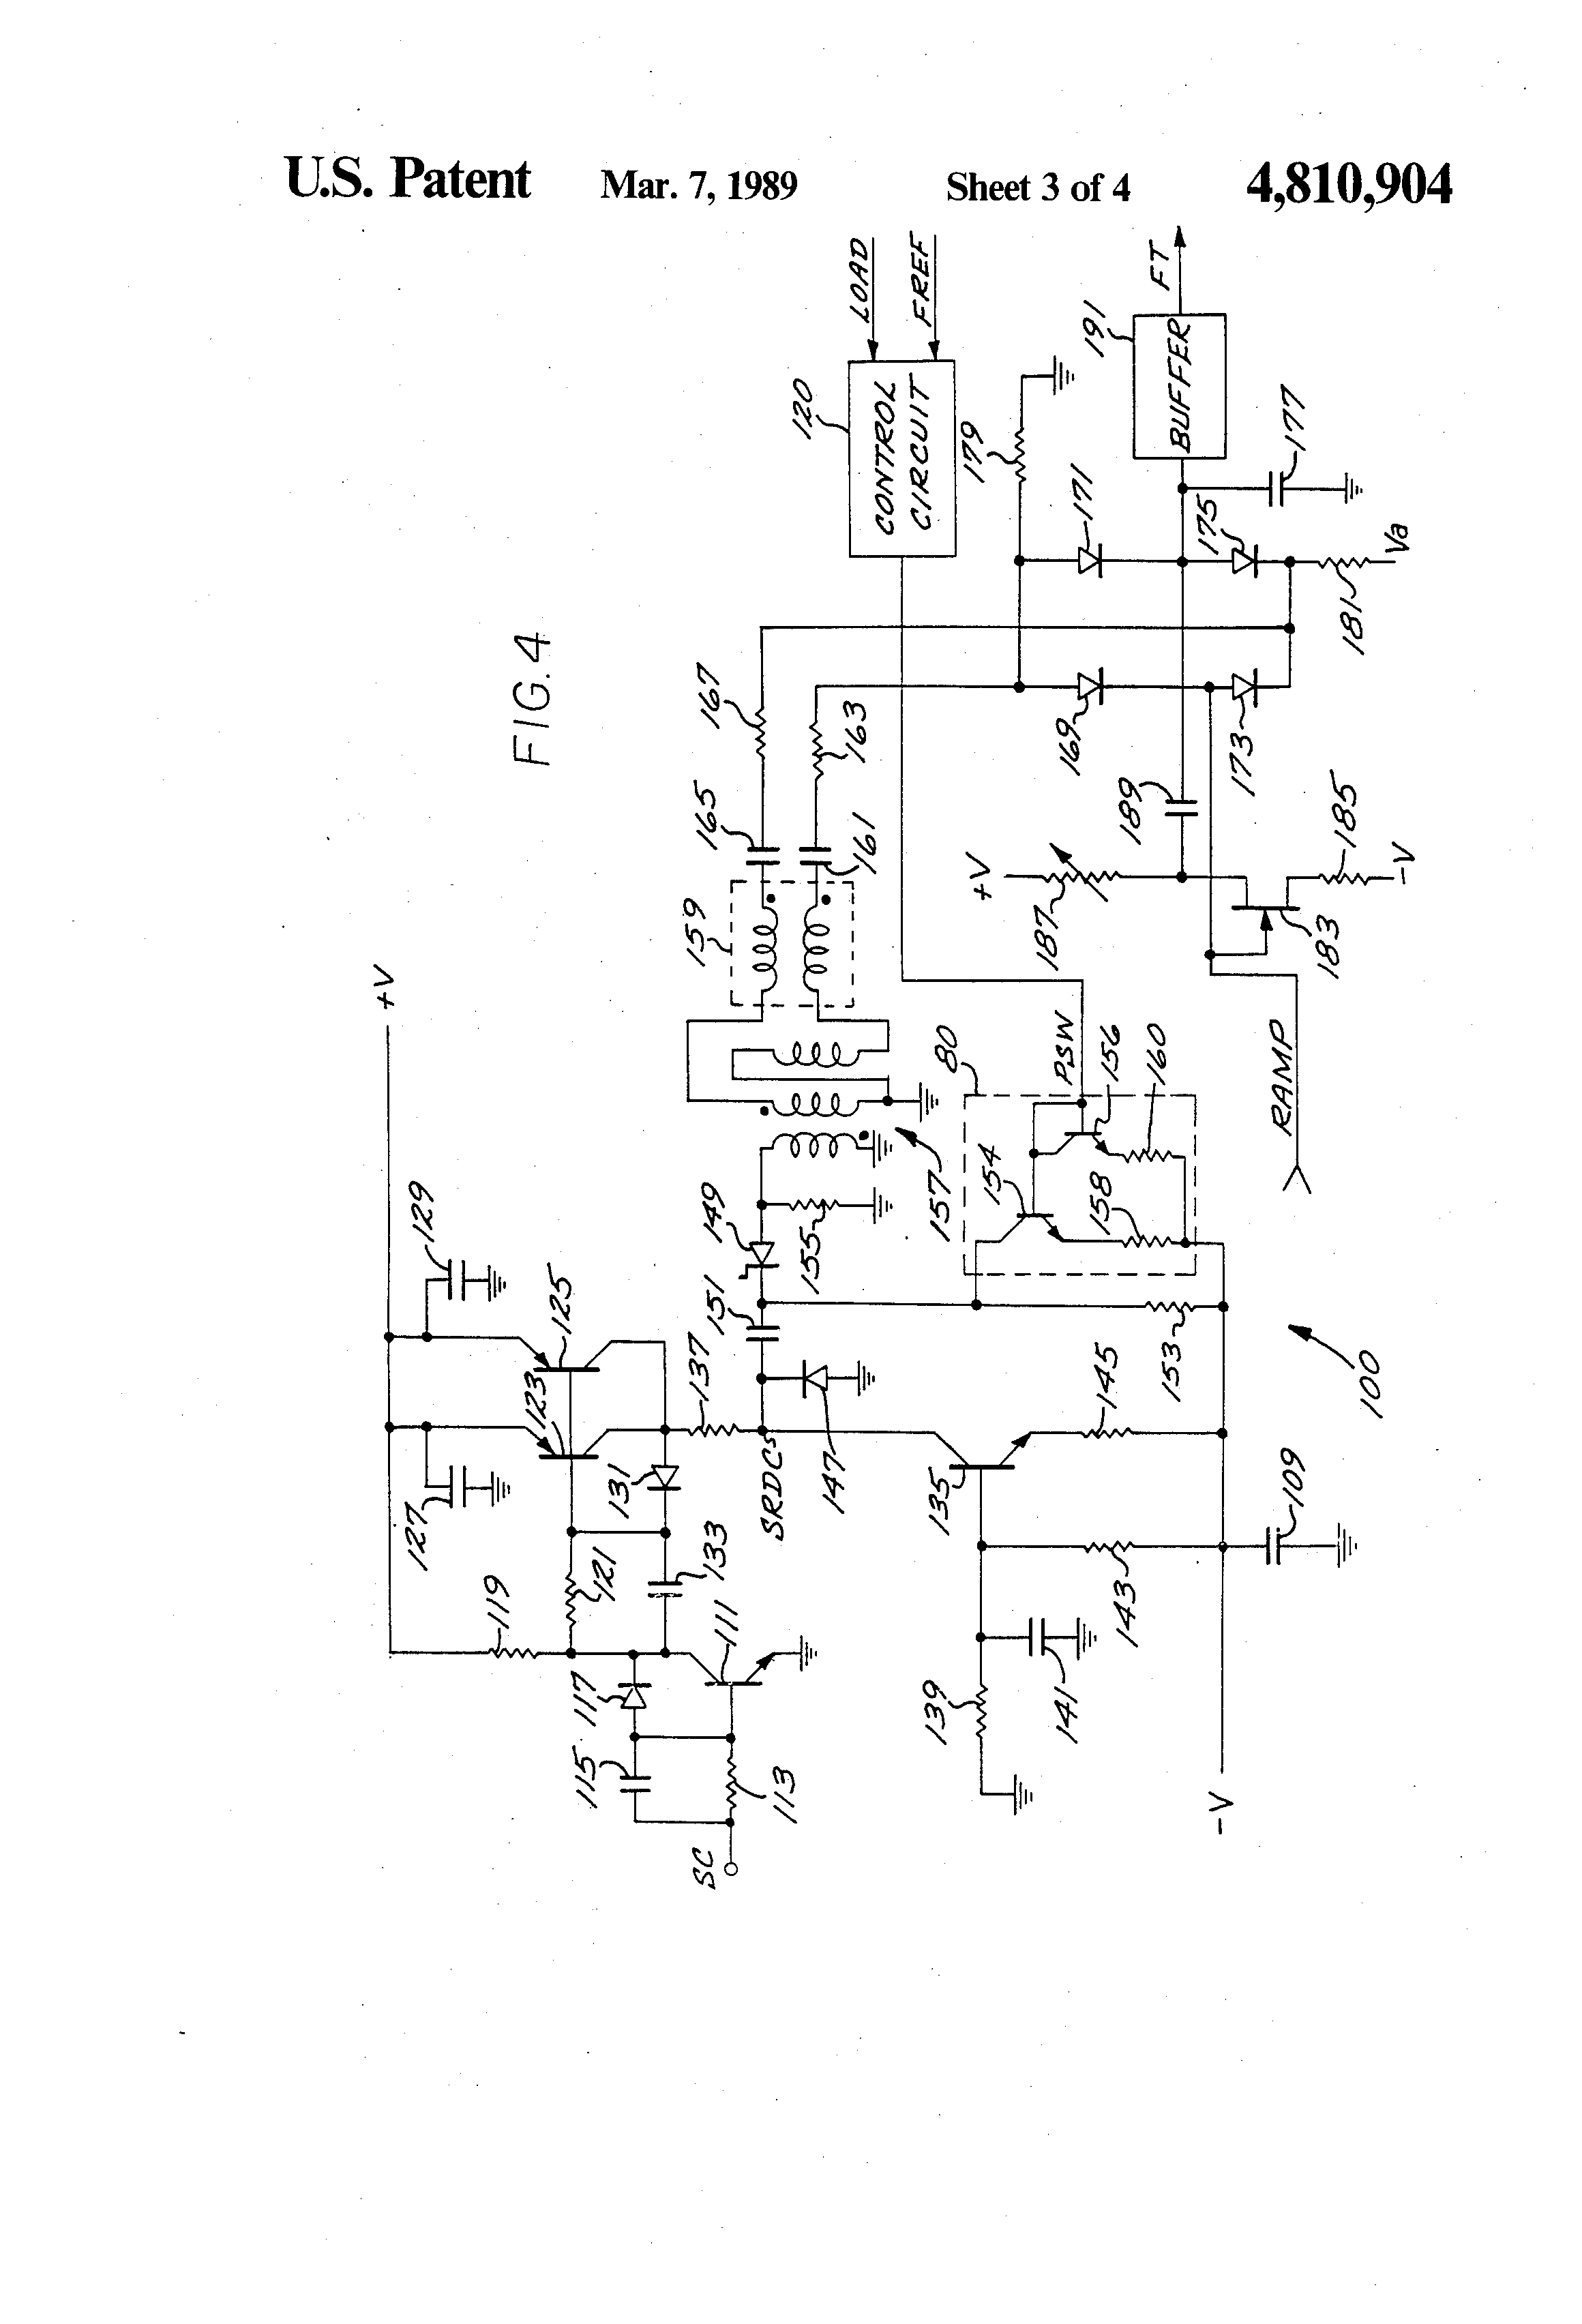 sample and hold operation